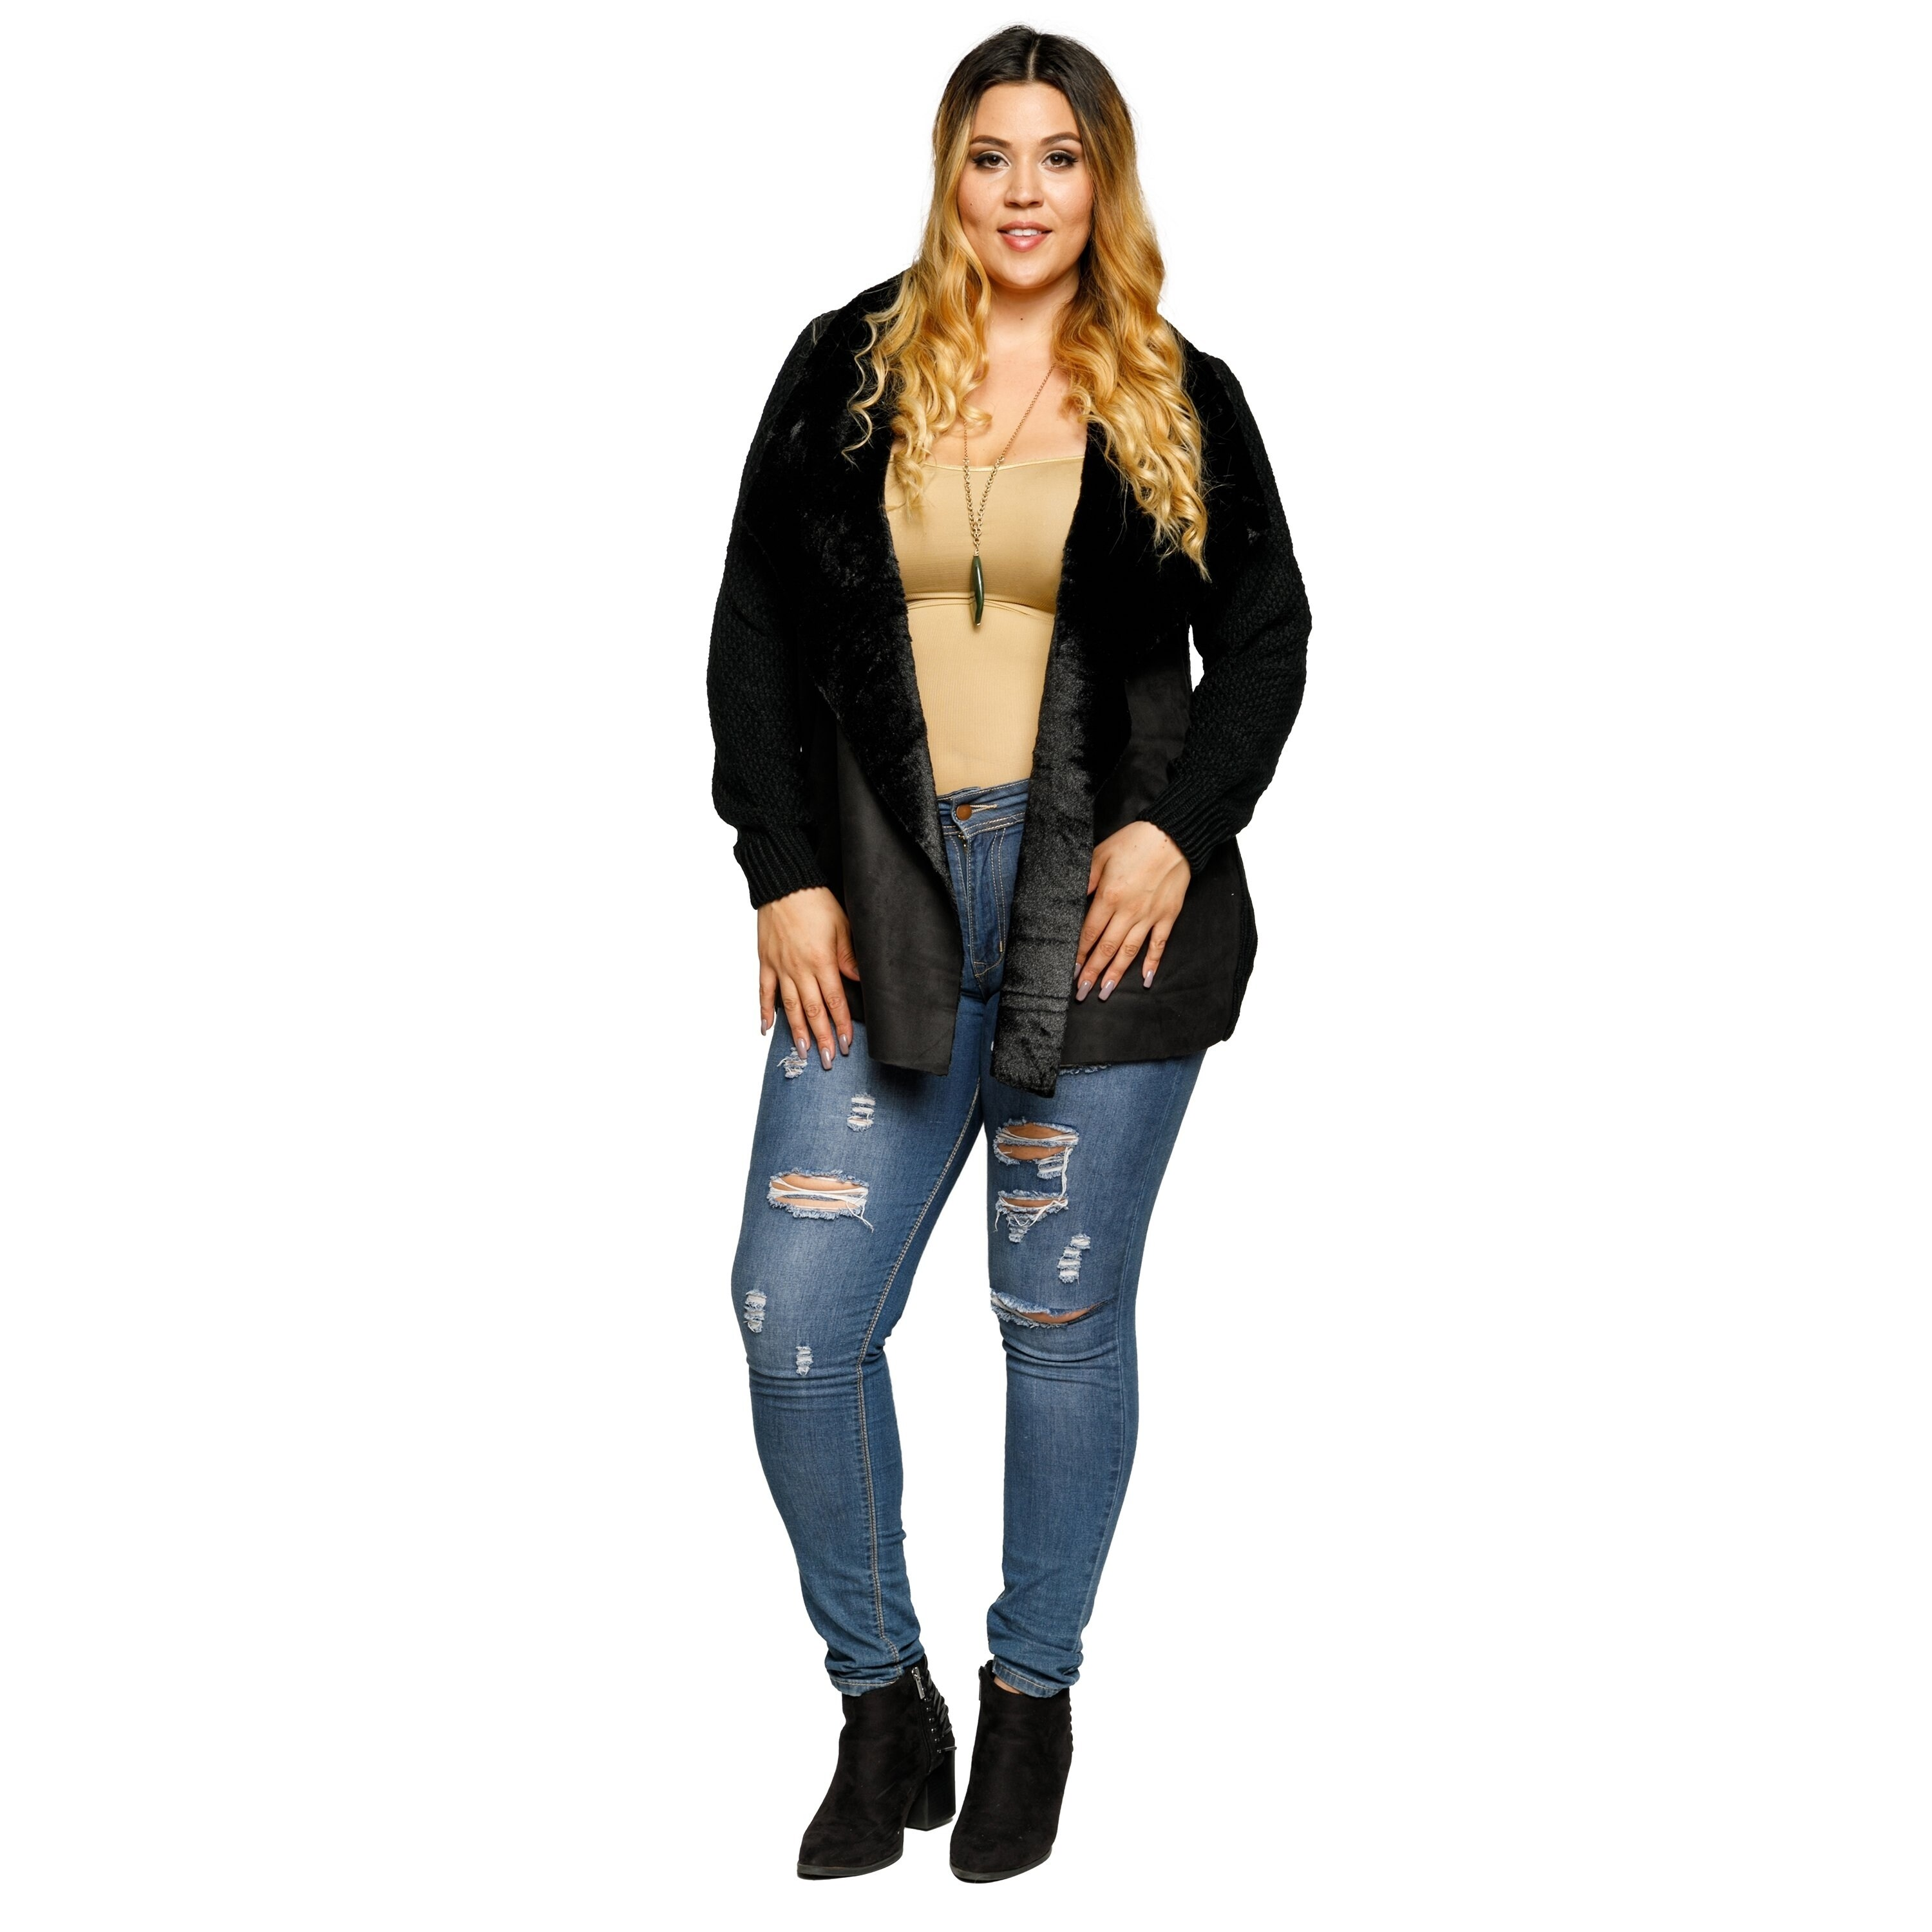 b6539277e6 Shop Xehar Womens Plus Size Faux Fur Collar Open Front Cardigan Sweater -  Free Shipping On Orders Over $45 - Overstock.com - 18793567